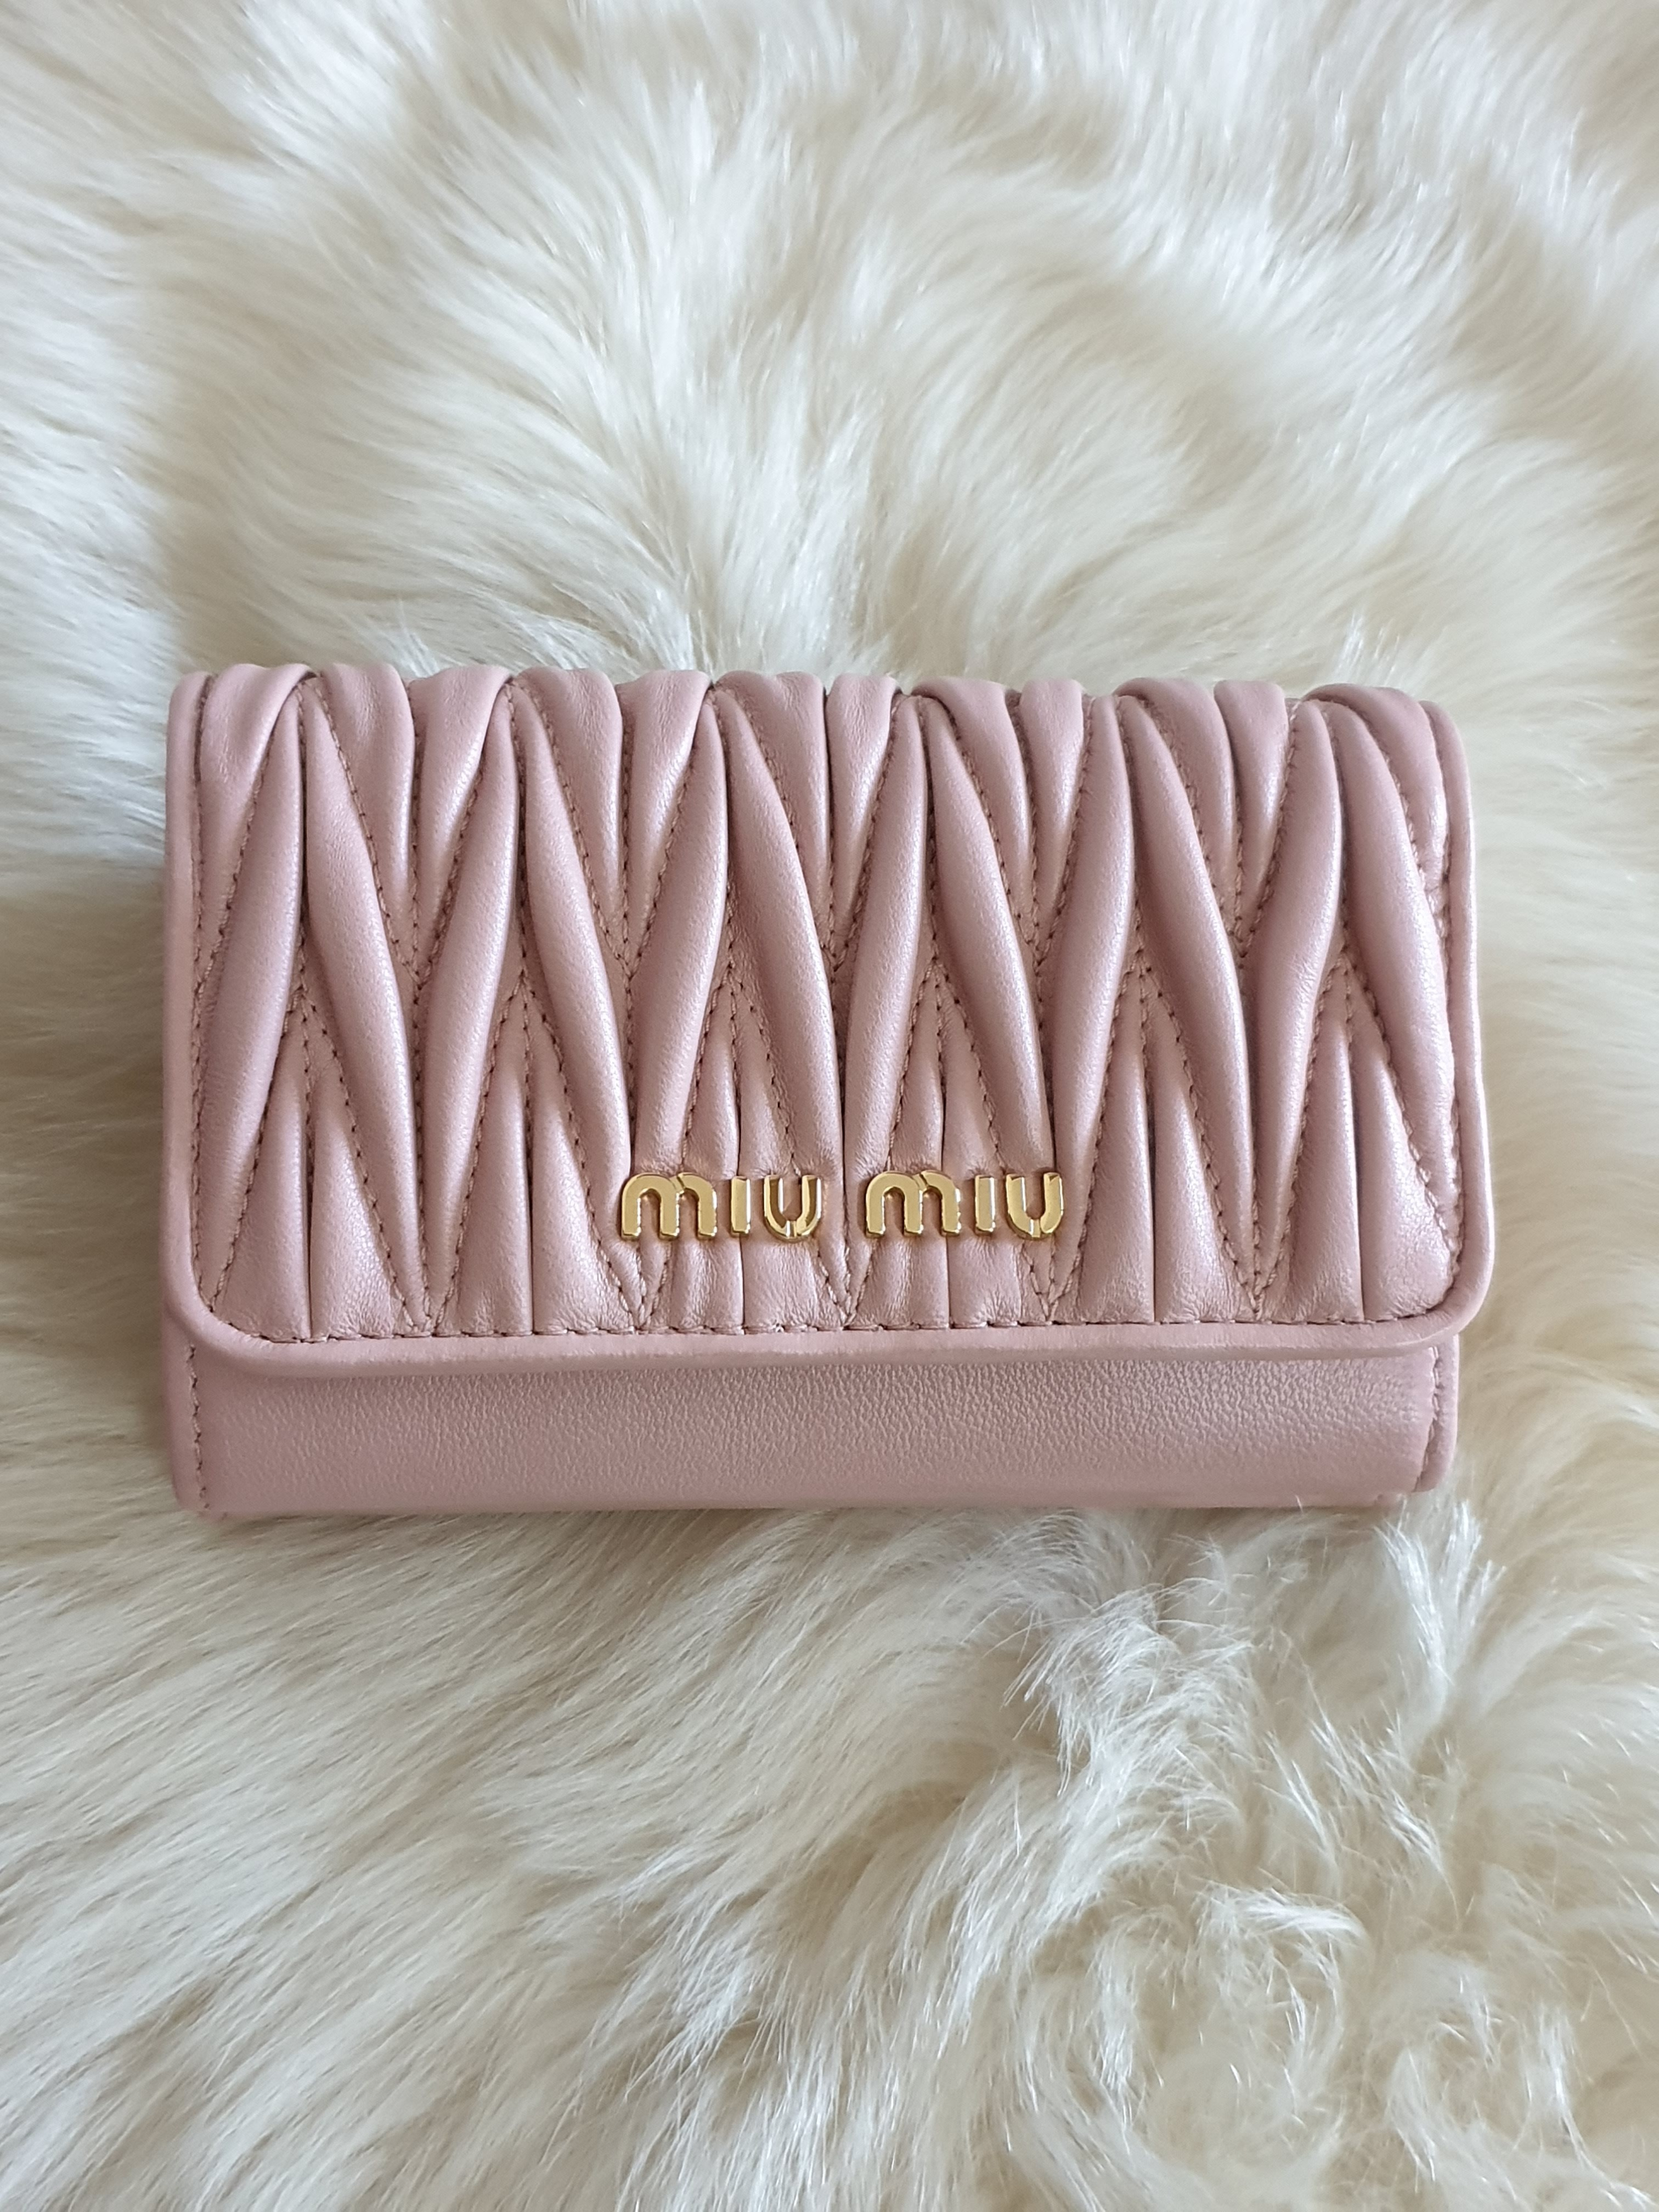 shop miumiu accessories